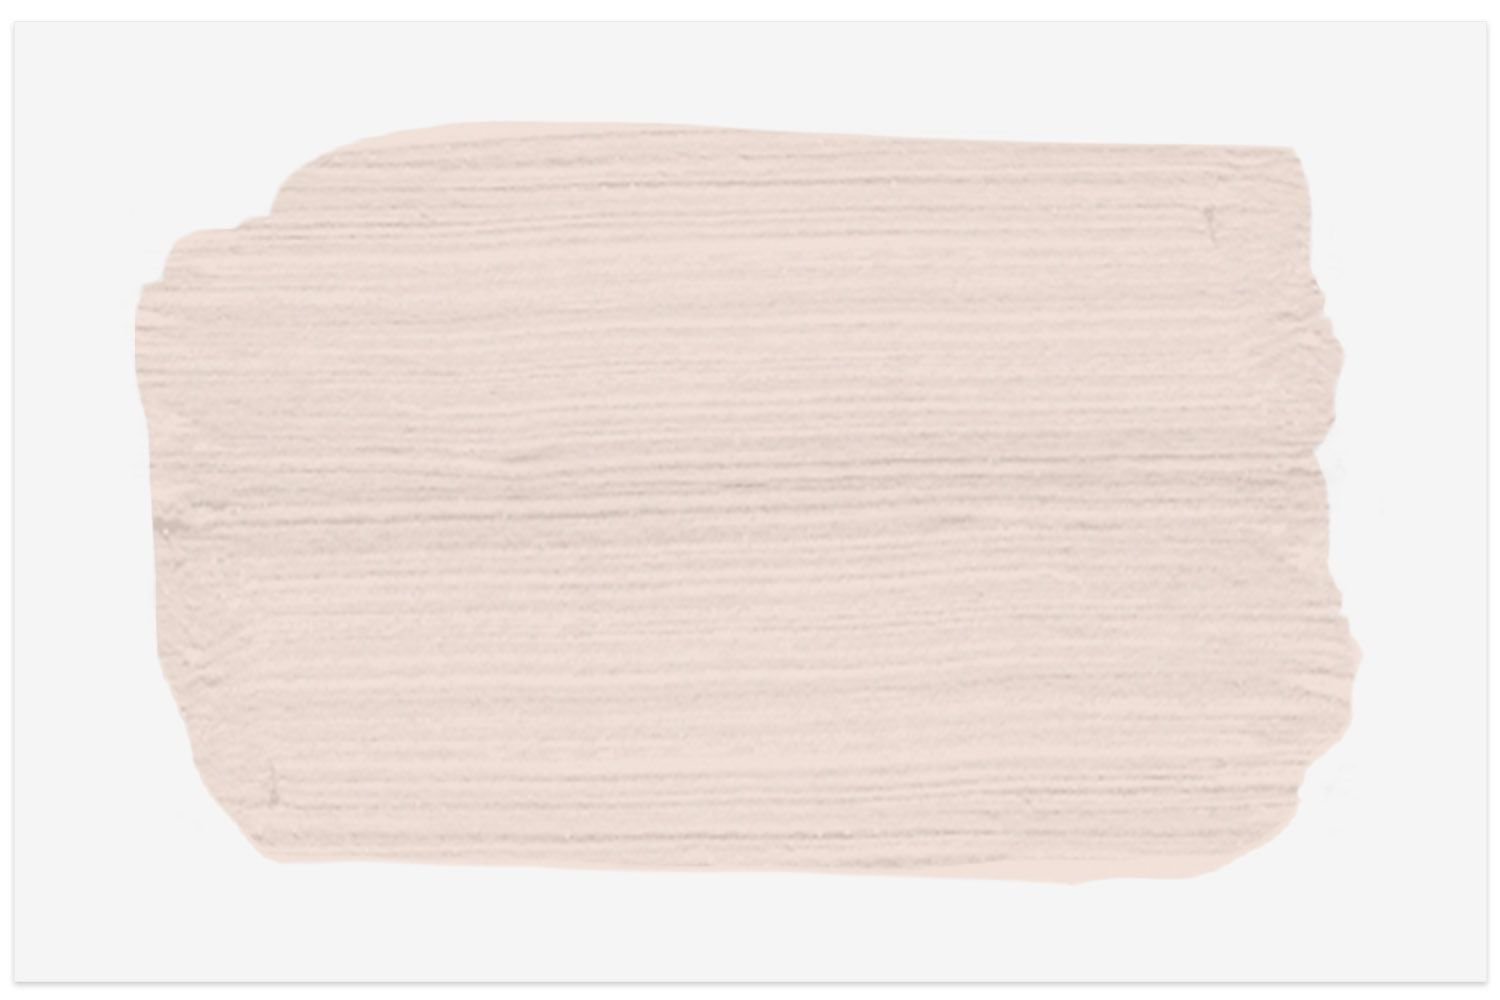 Blush Pink: Intimate paint swatch for little girls' room